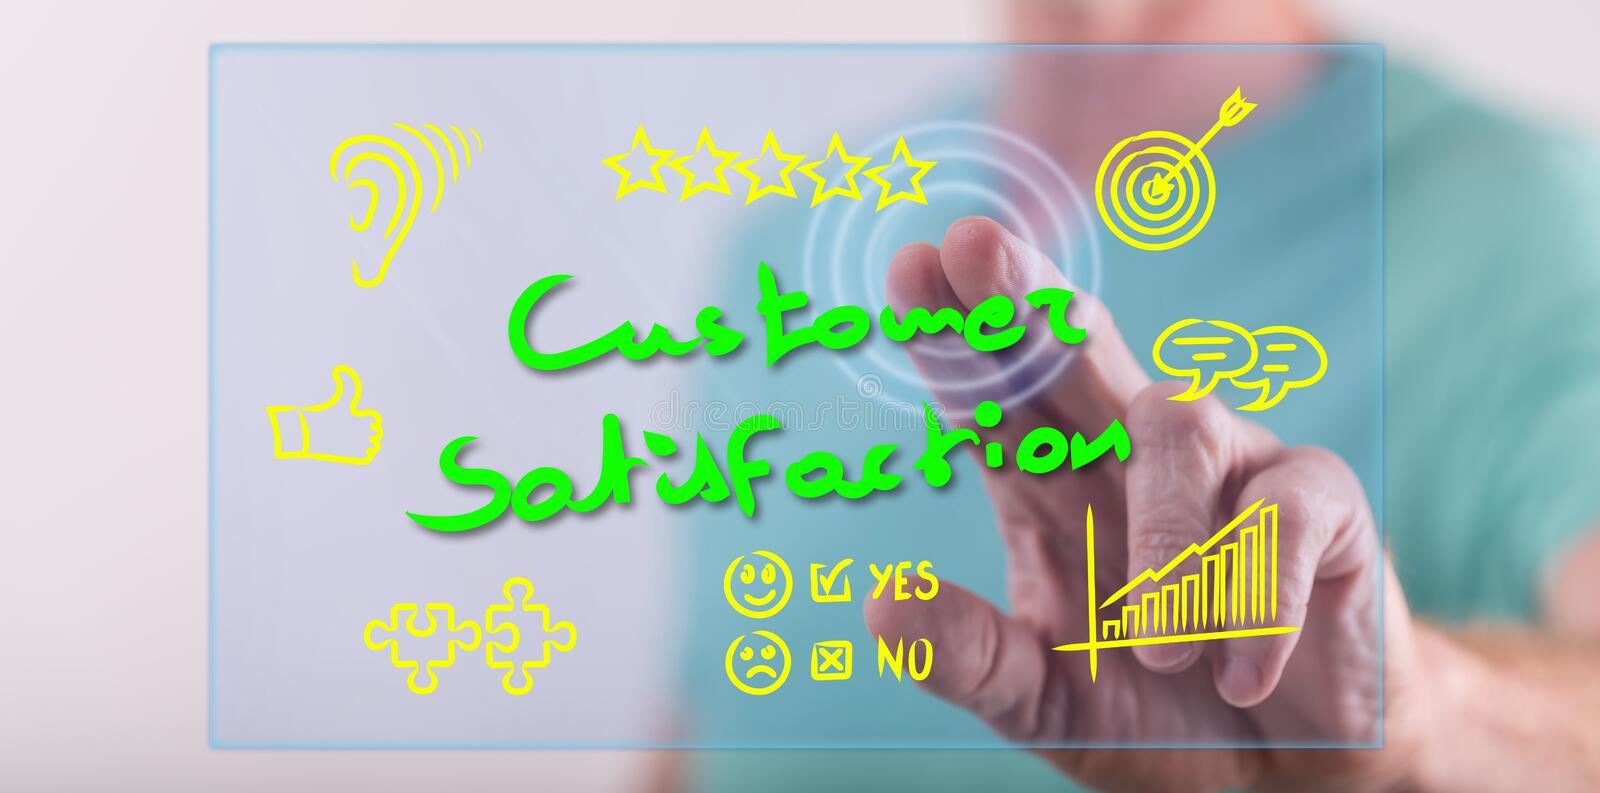 Man touching a customer satisfaction concept royalty free stock photos